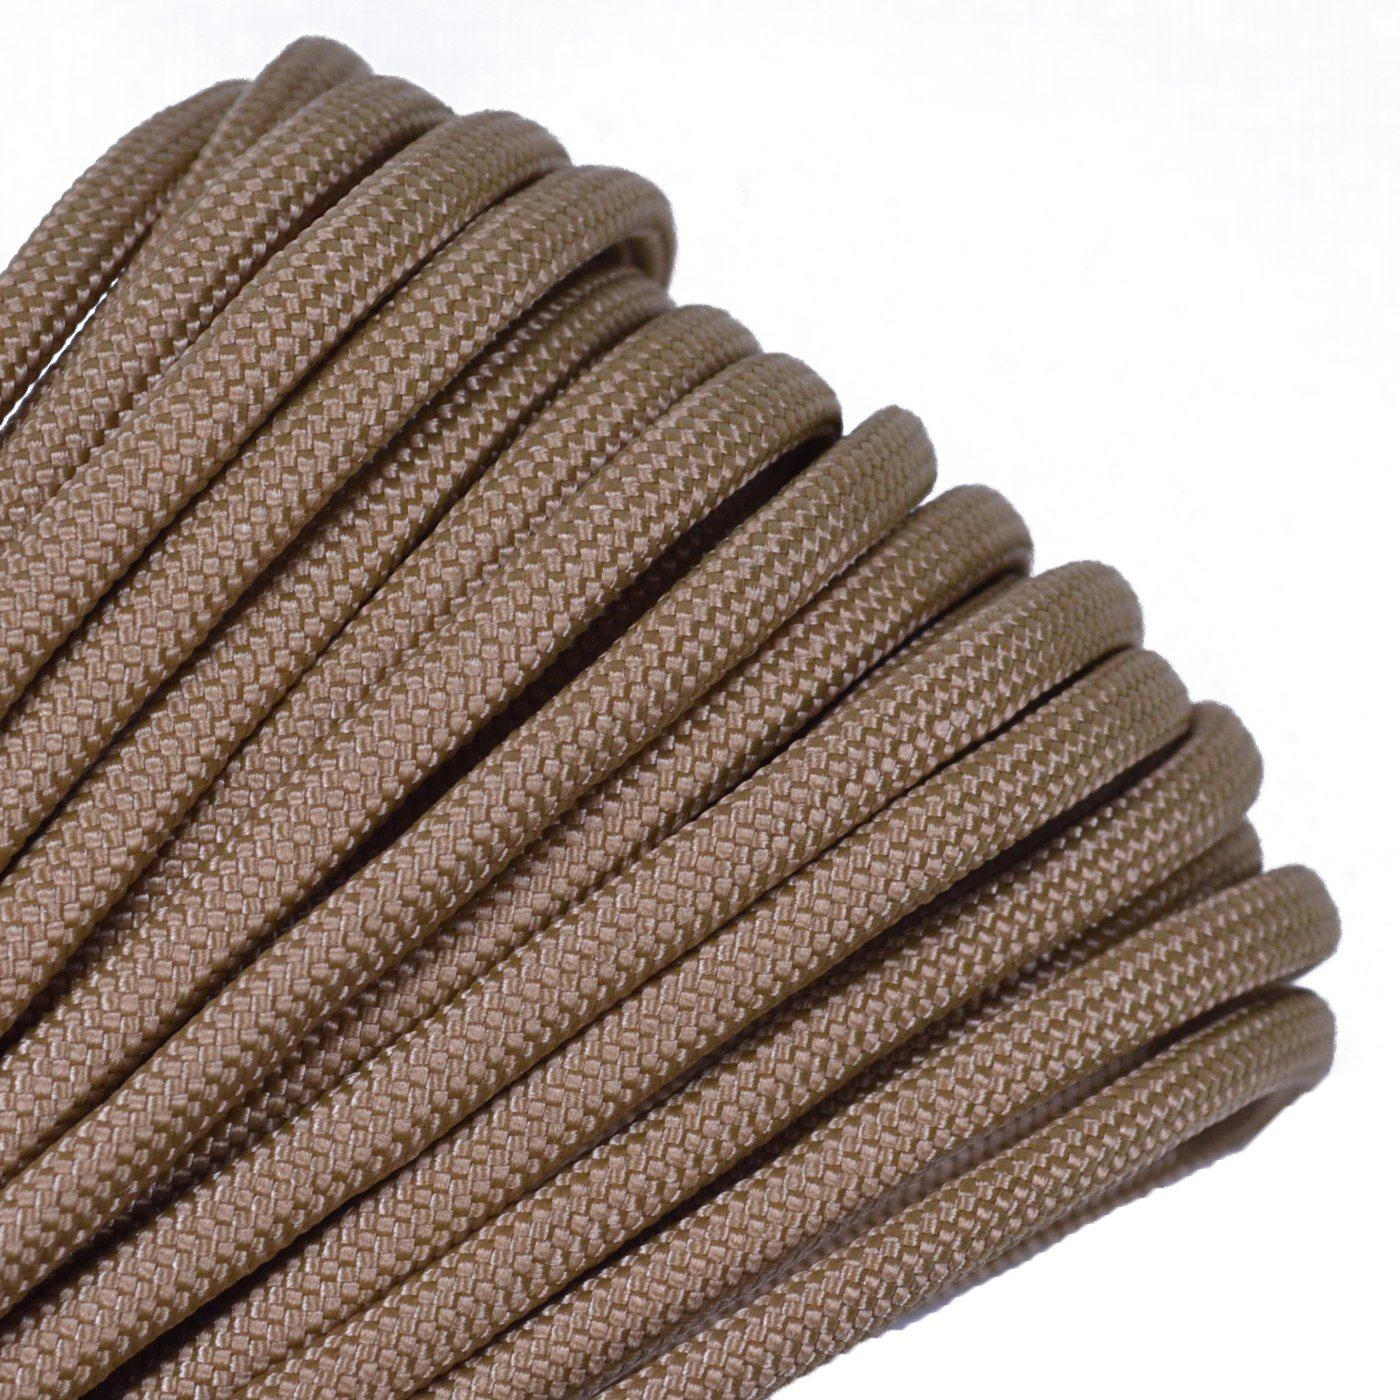 Solid Colors Paracord - Type III Parachute Cord - Gold - 100 Feet by Bored Paracord